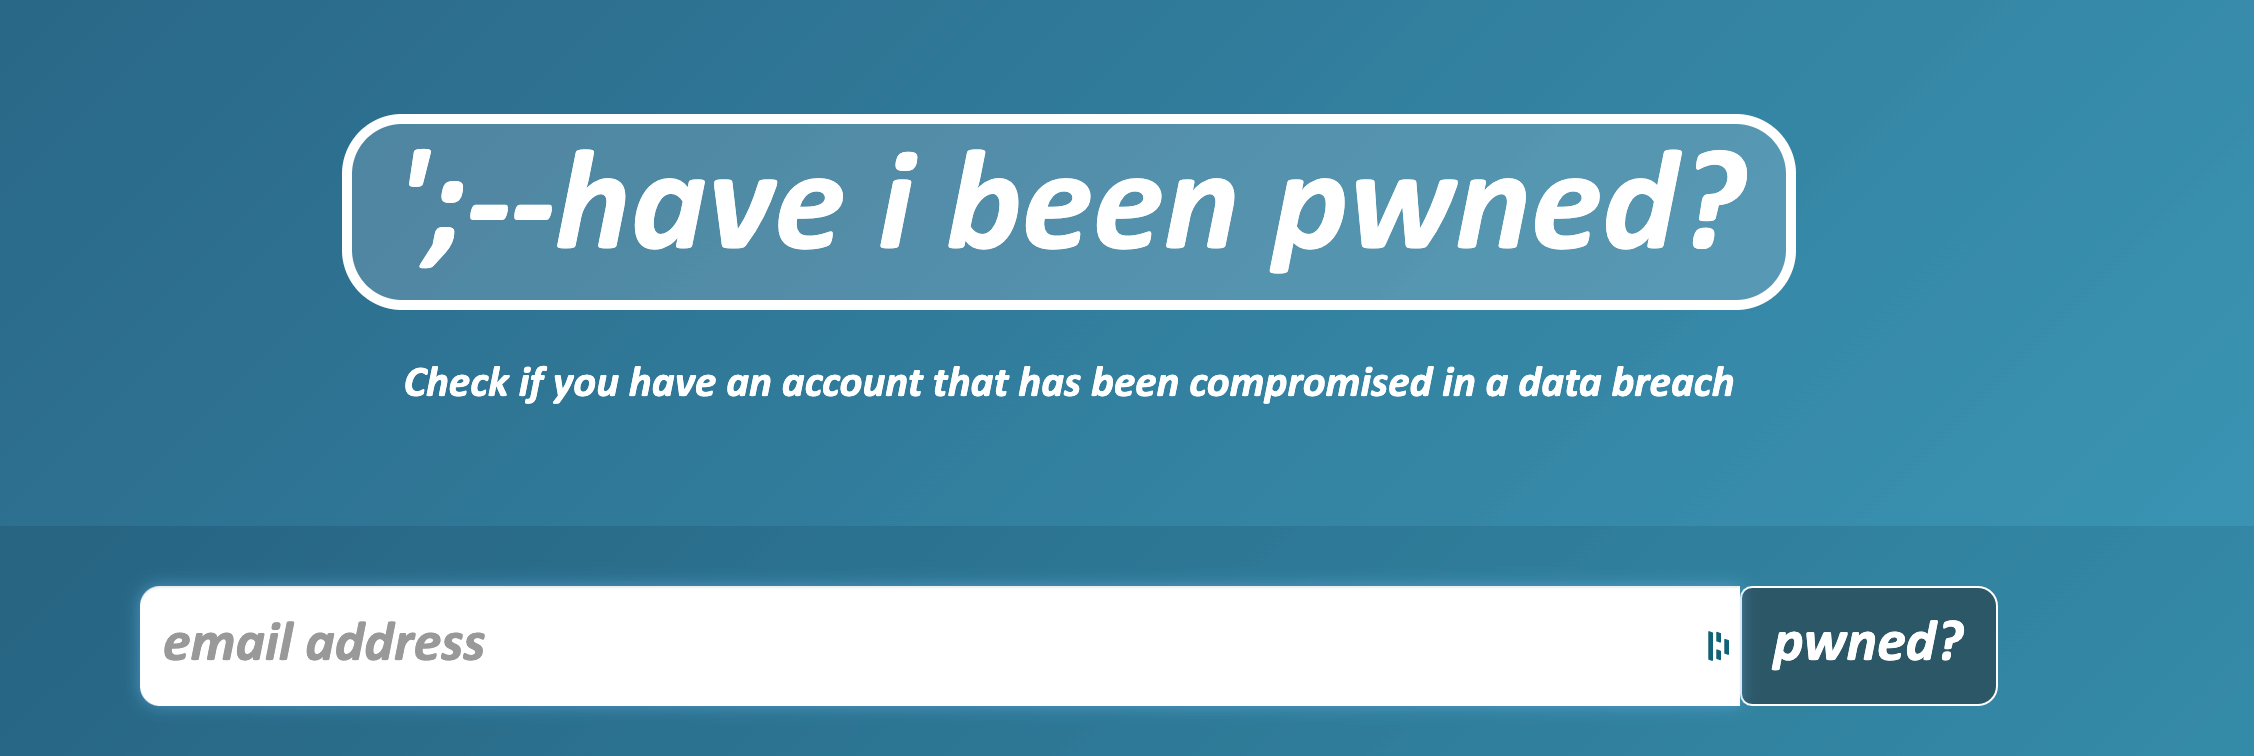 have I been pwned website homepage